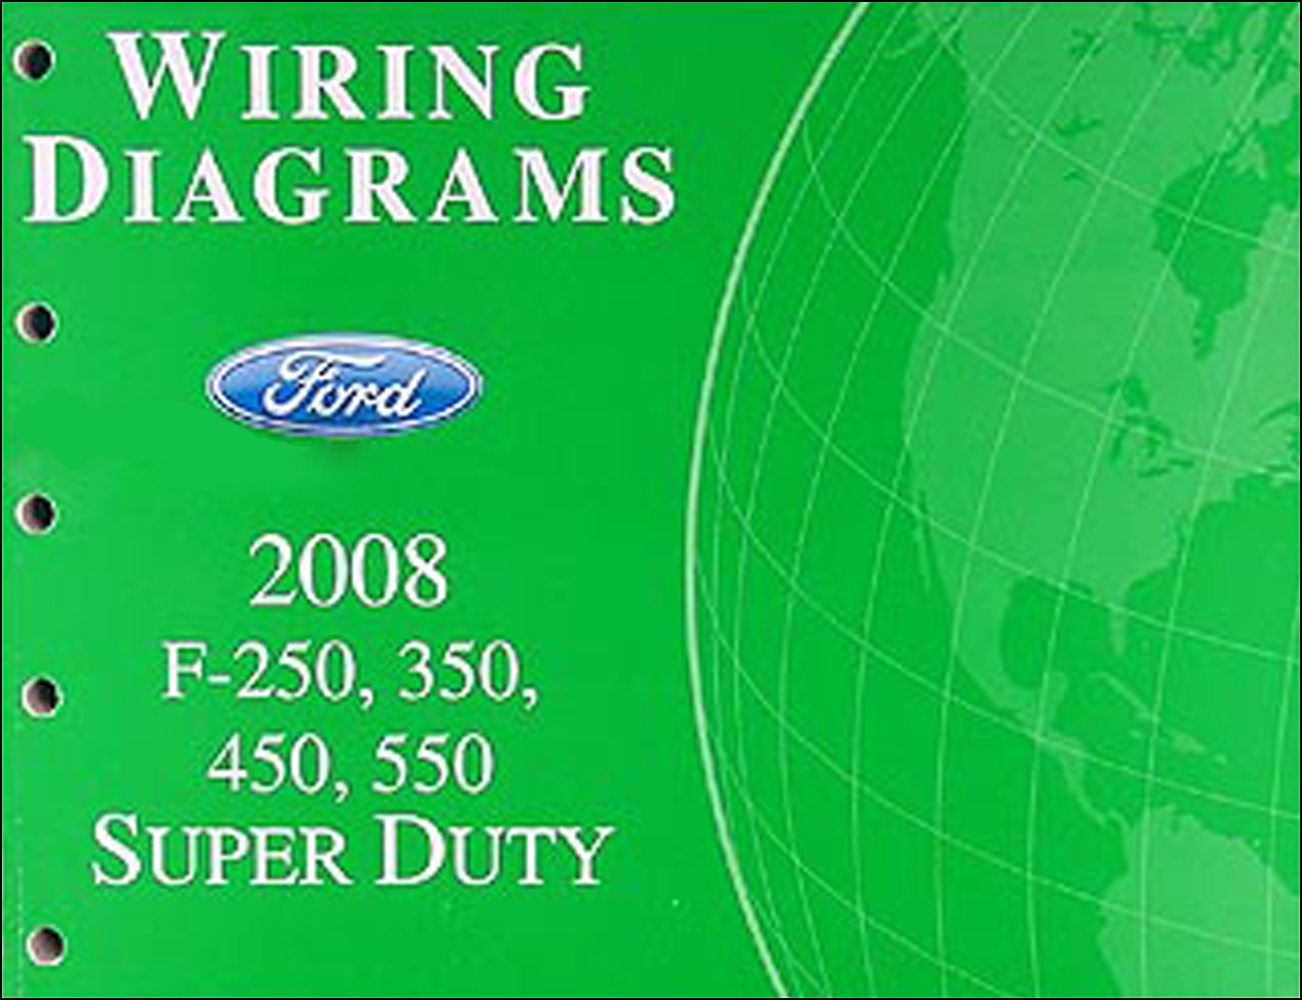 2008 ford f-250 thru 550 super duty wiring diagram manual original 08 ford f 250 wiring diagram 7.3 powerstroke wiring diagram faxon auto literature